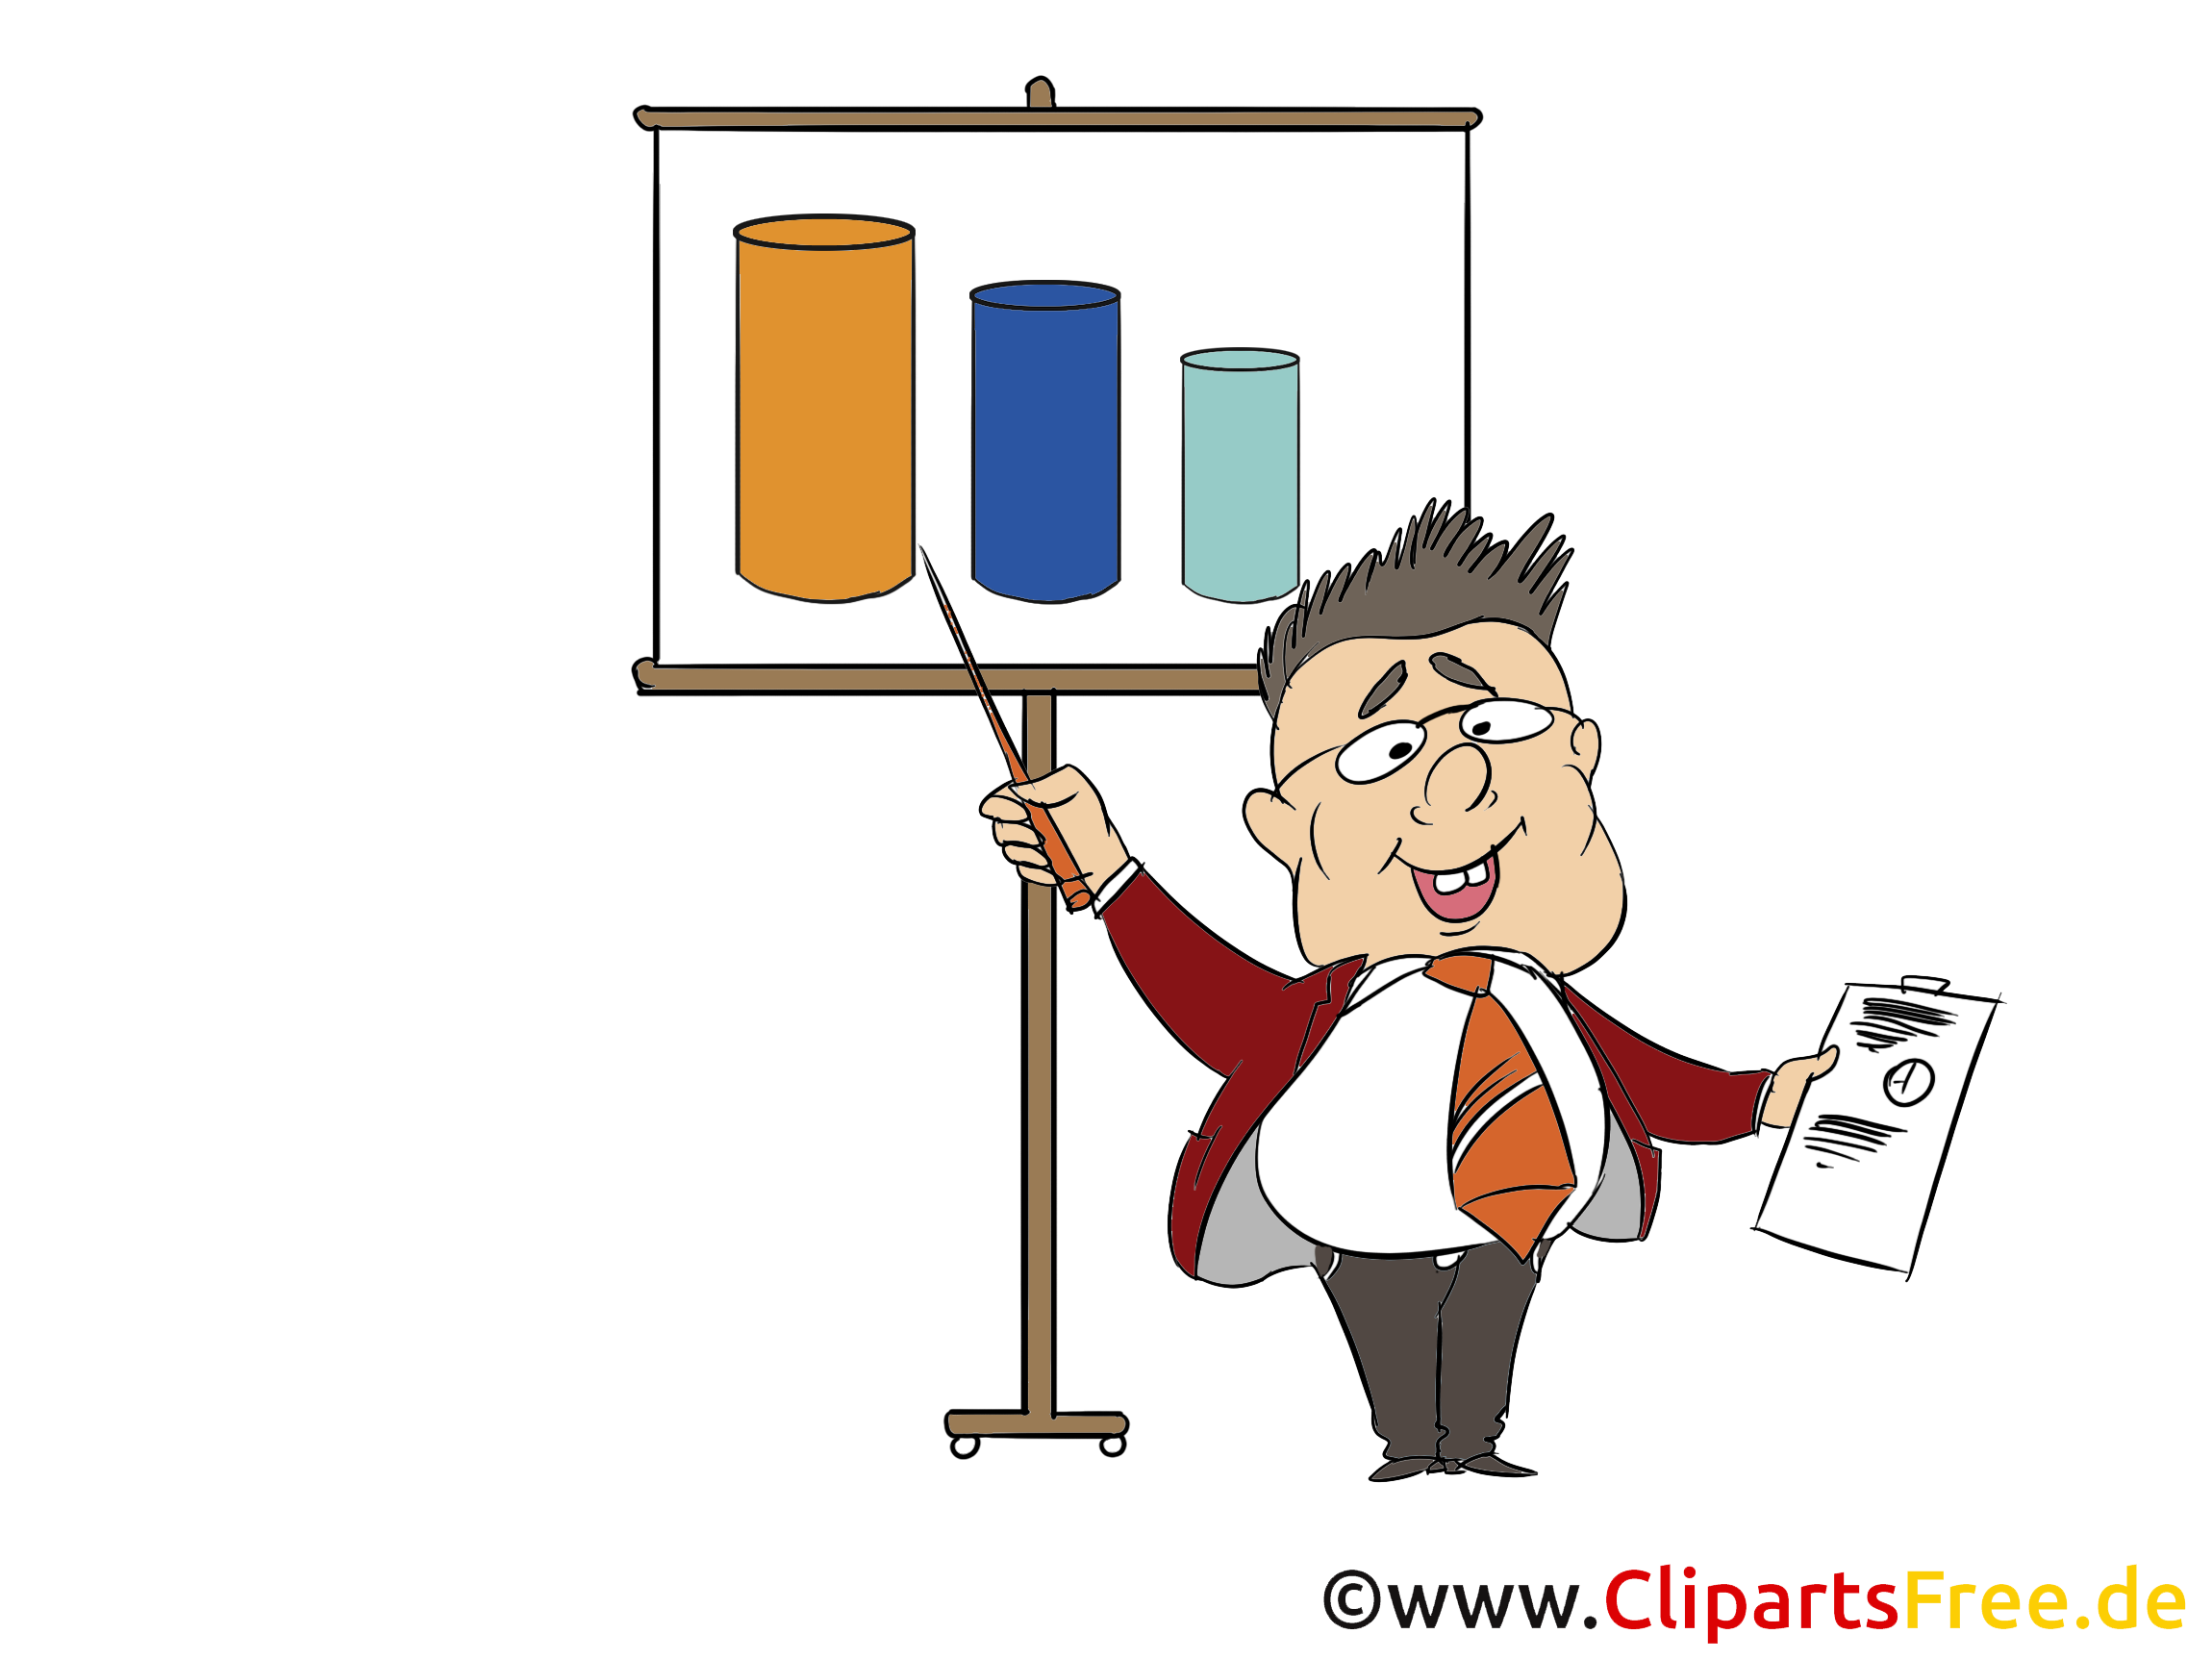 Leasing Bild, Clipart, Grafik, Cartoon, Illustration